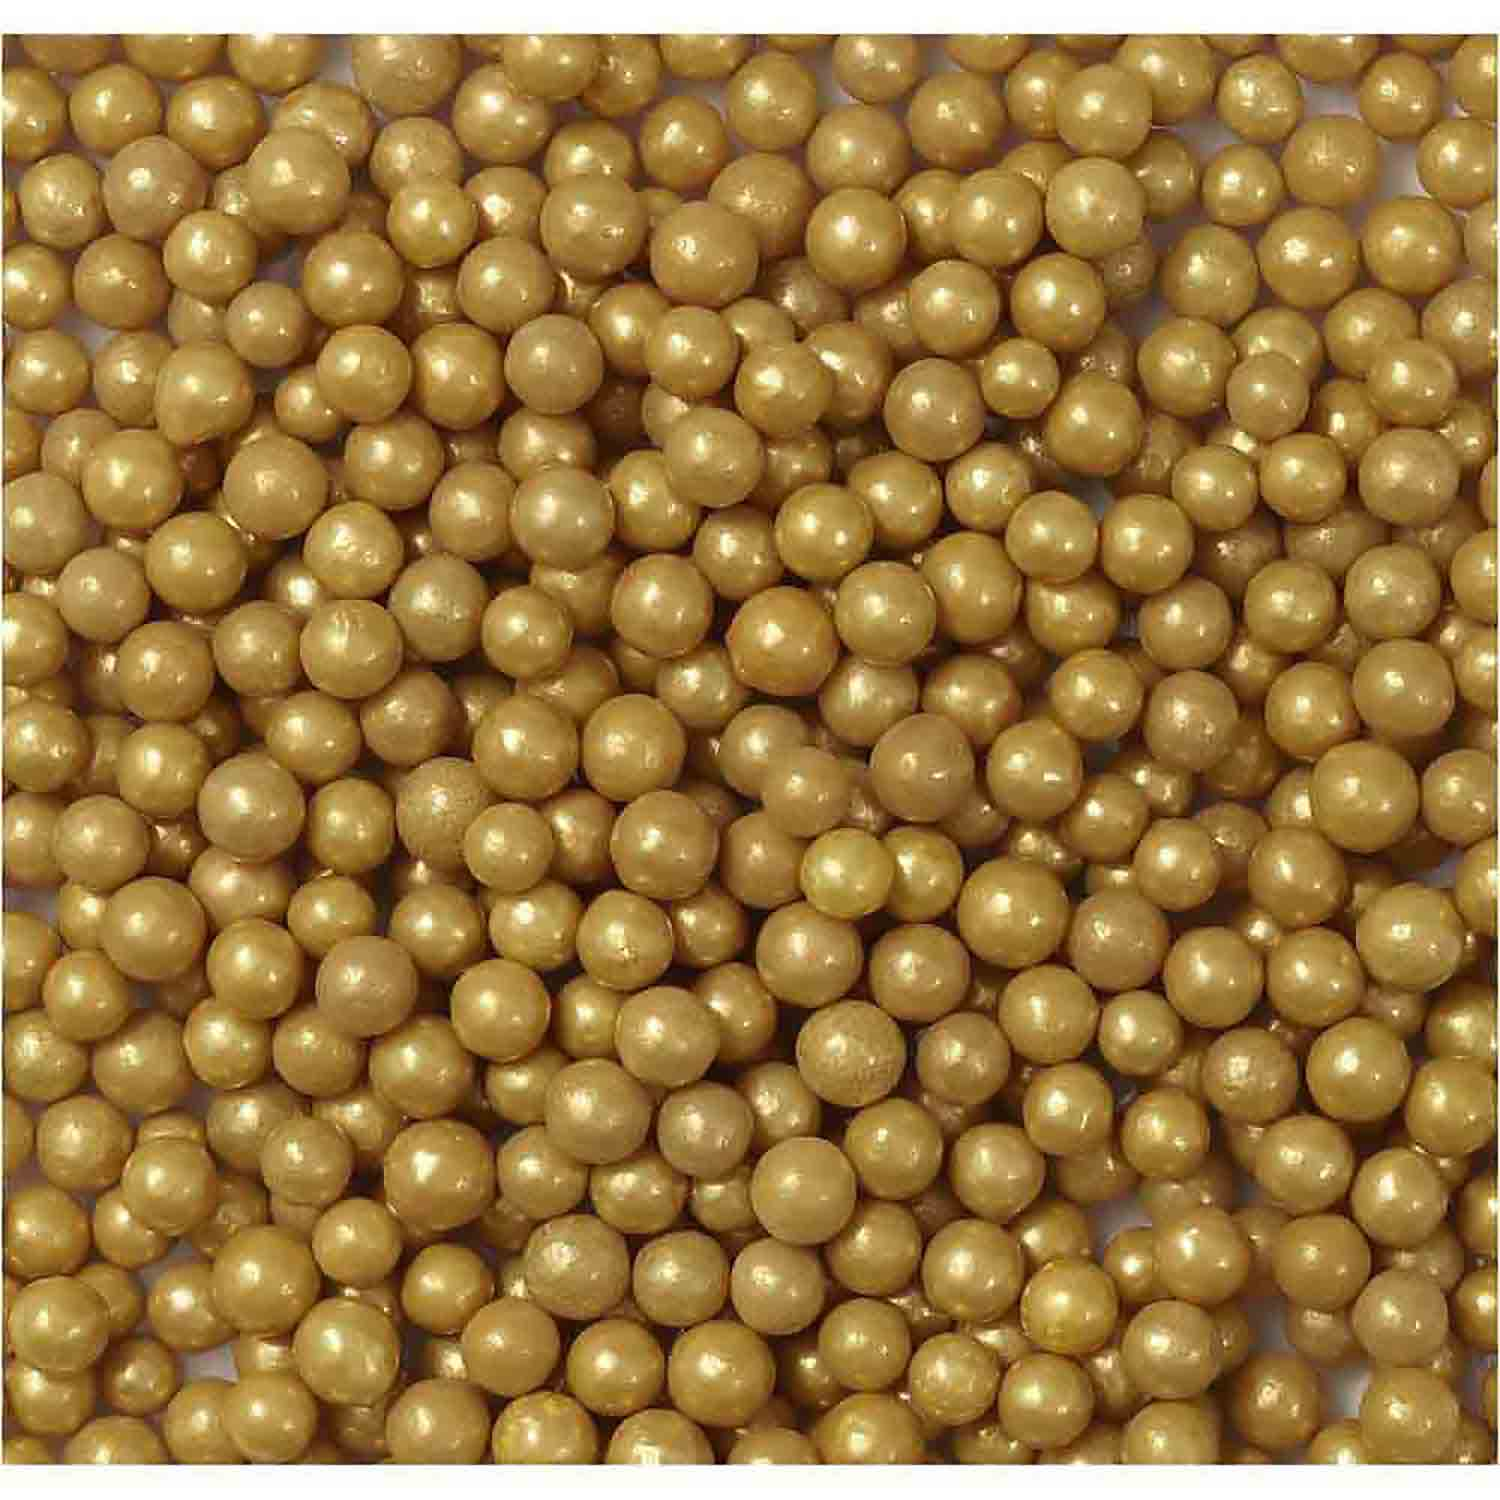 Gold Sugar Pearls / Dragees